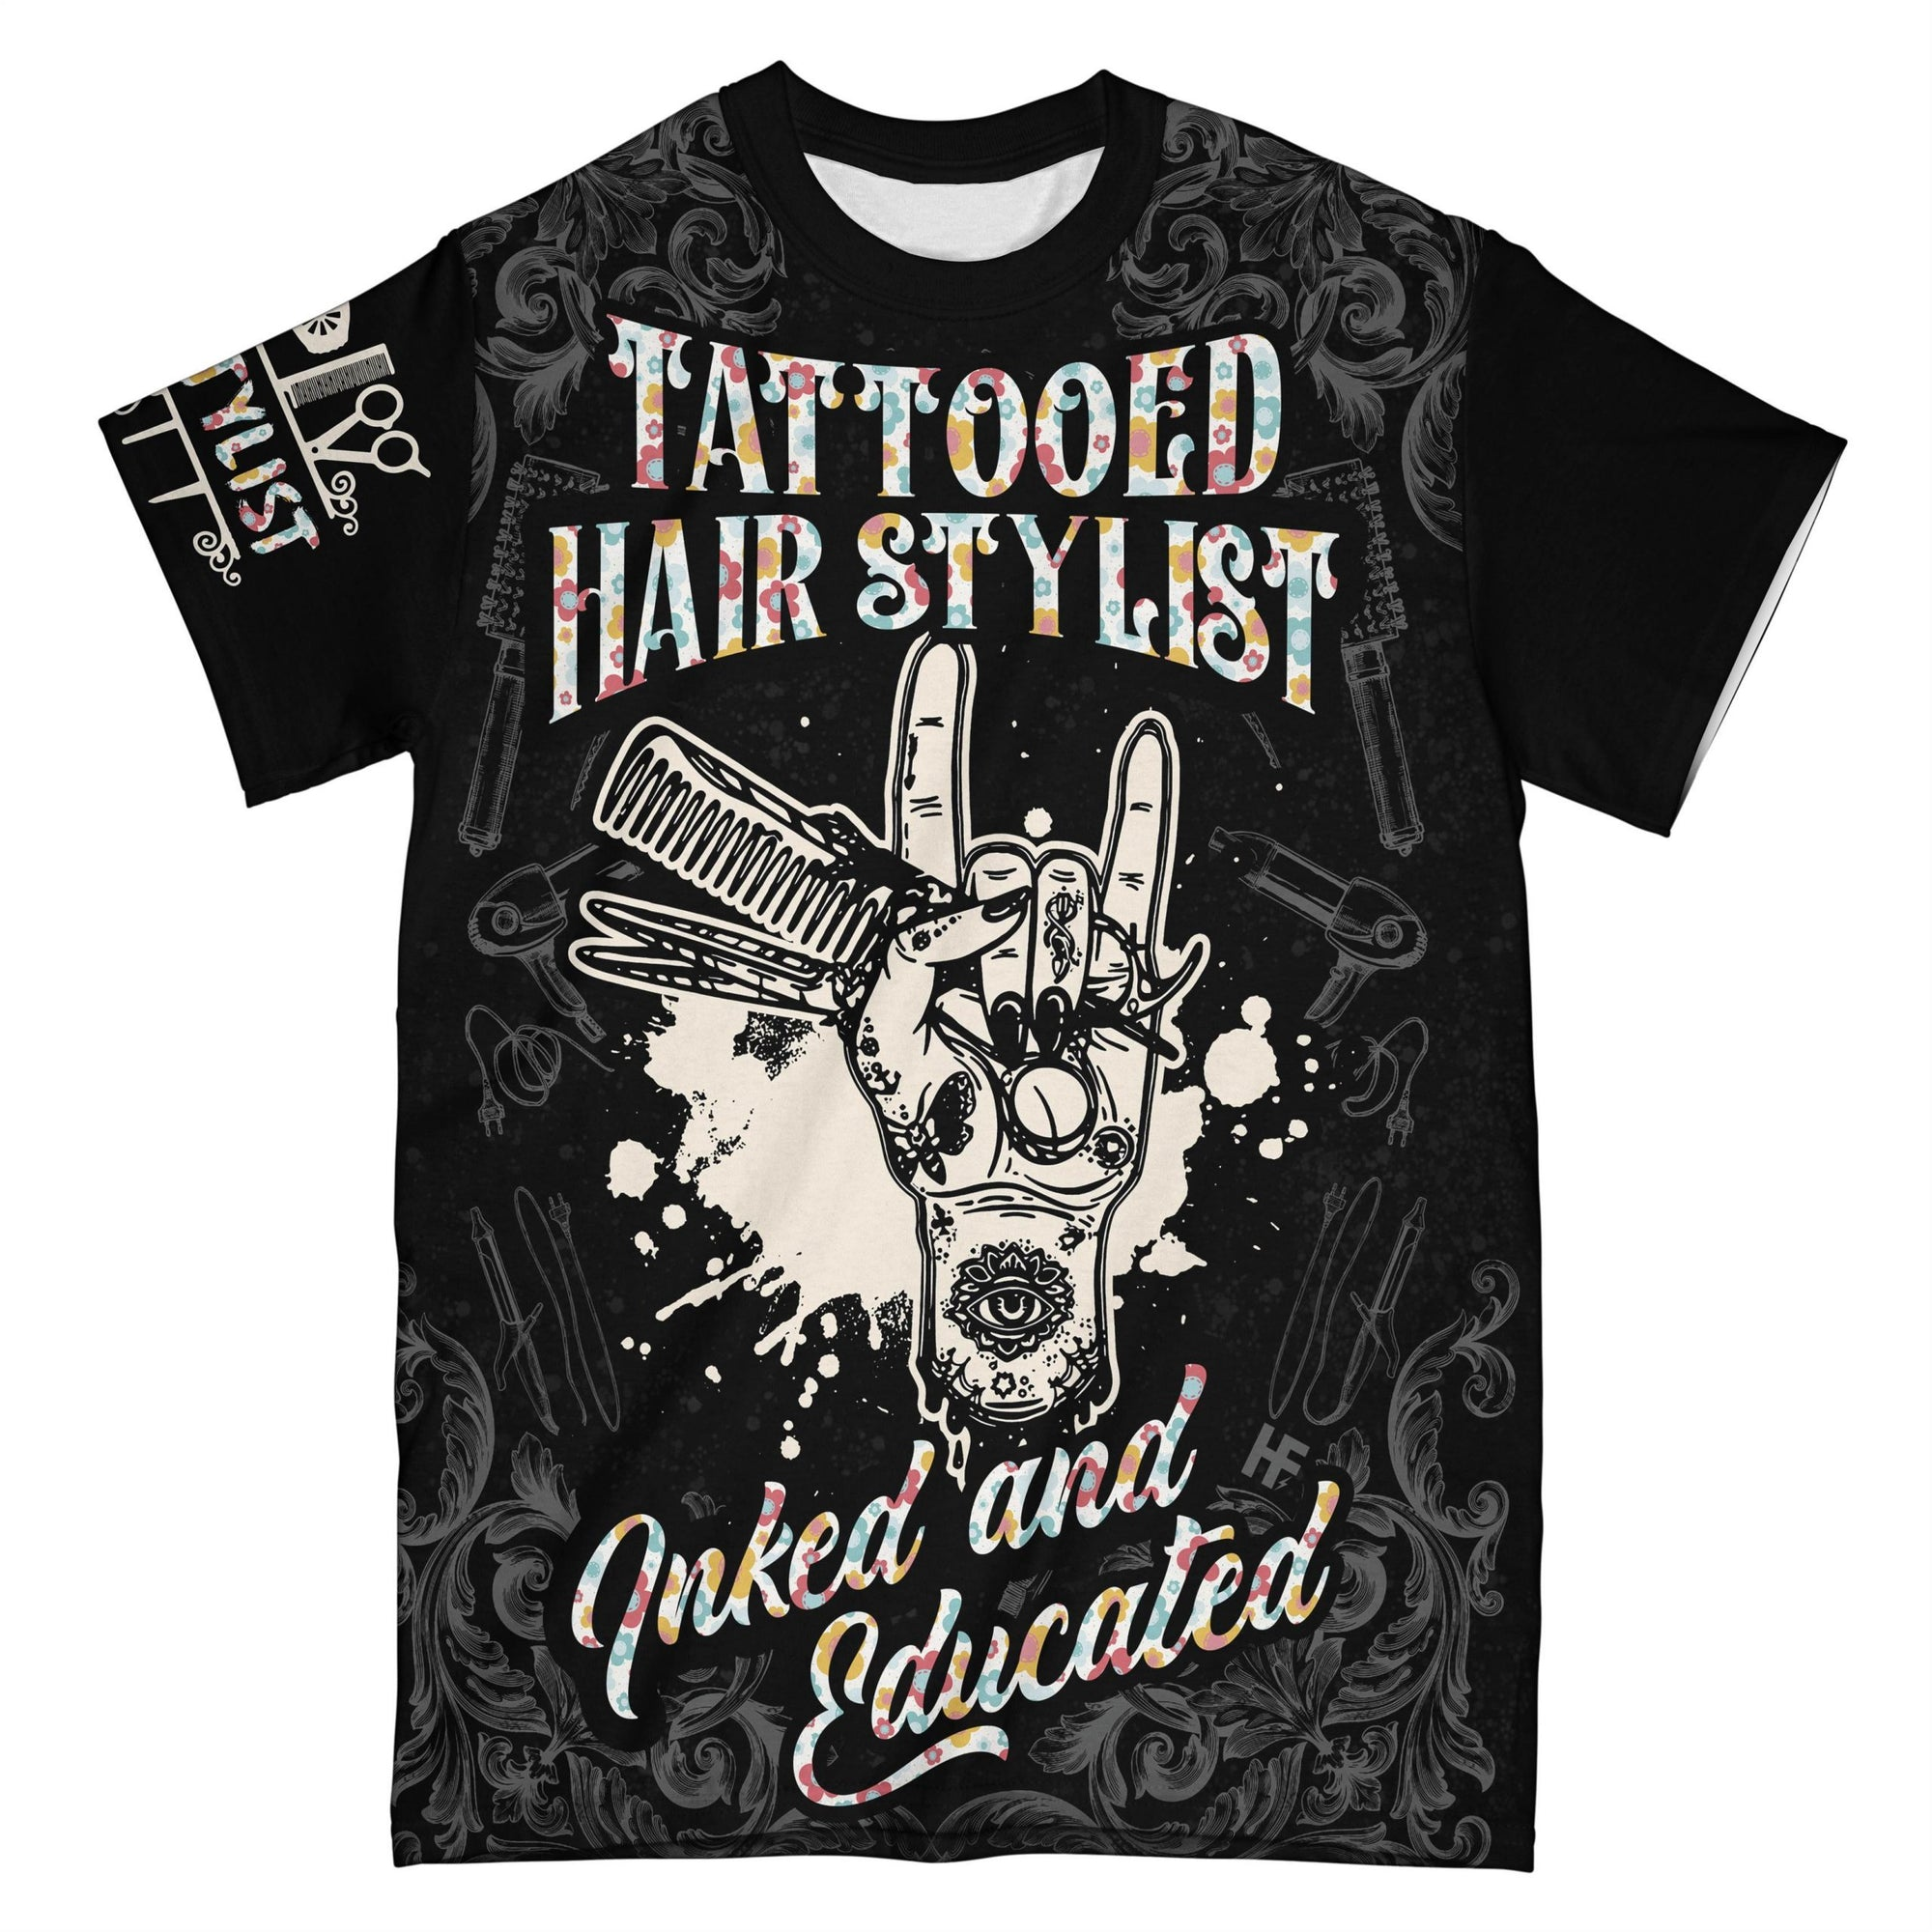 Tattooed Hair Stylist I'll Cut You EZ08 2608 All Over T-shirt